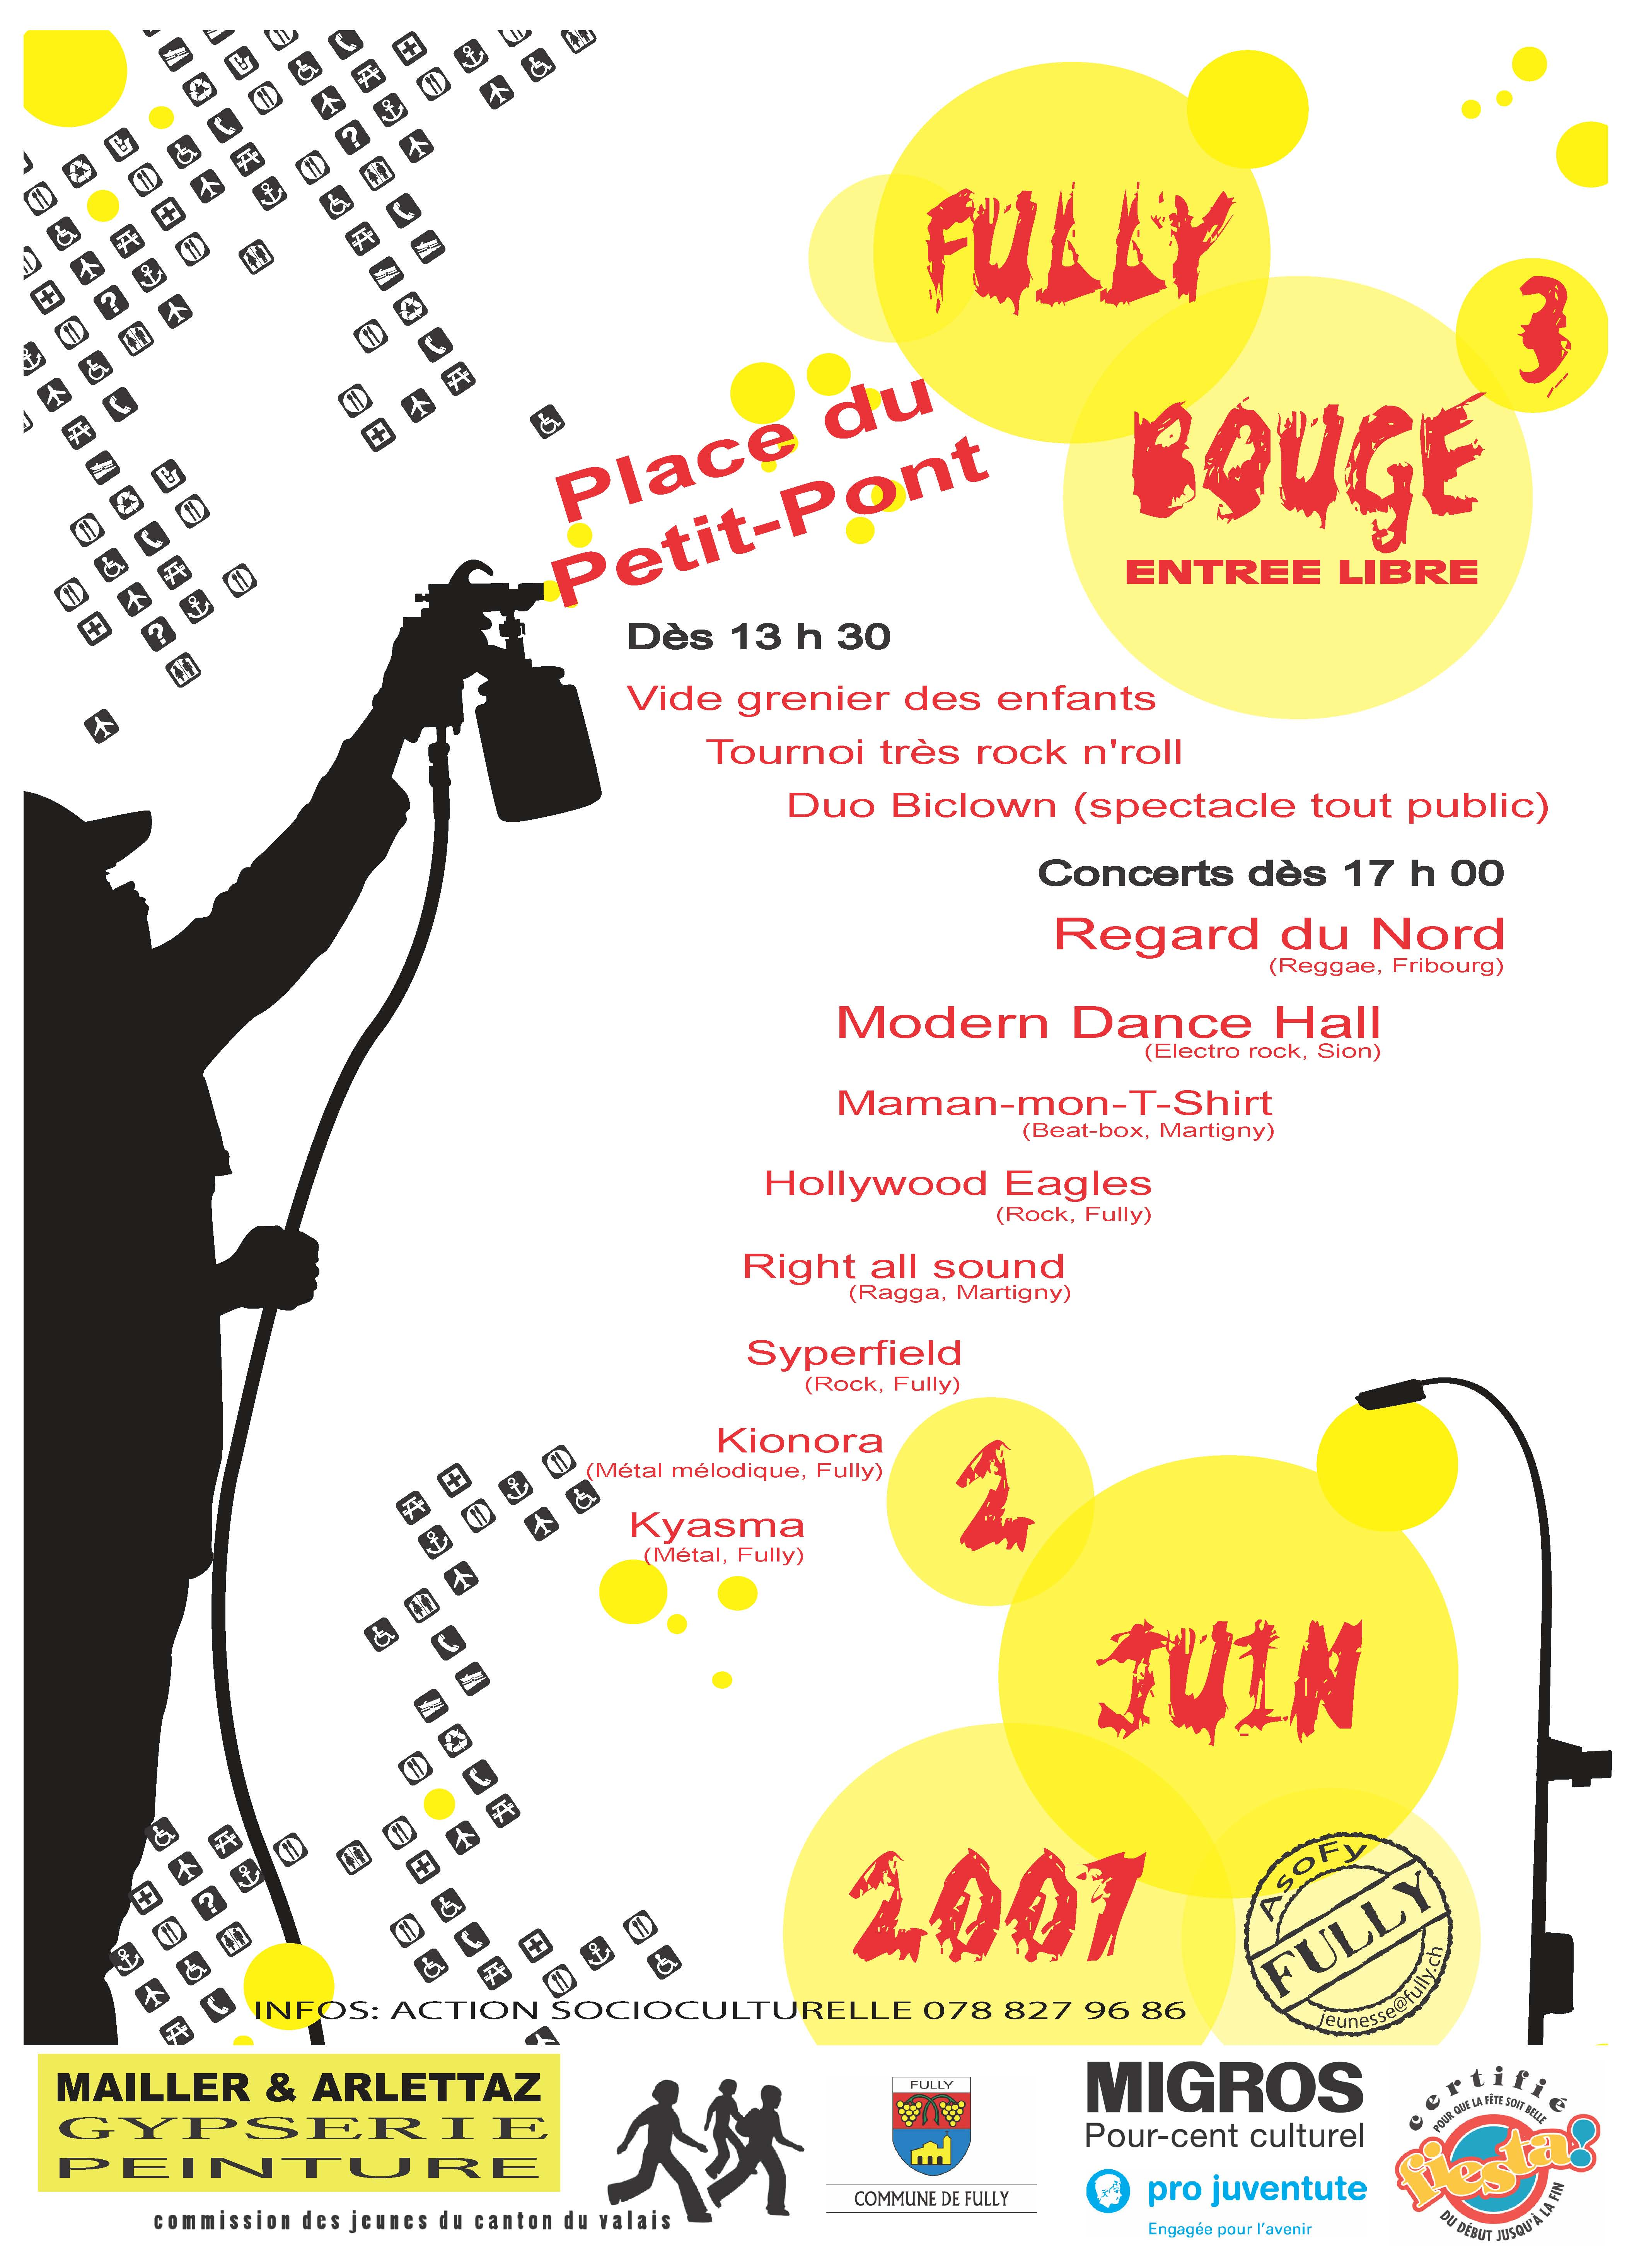 Affiche Fully bouge_2007